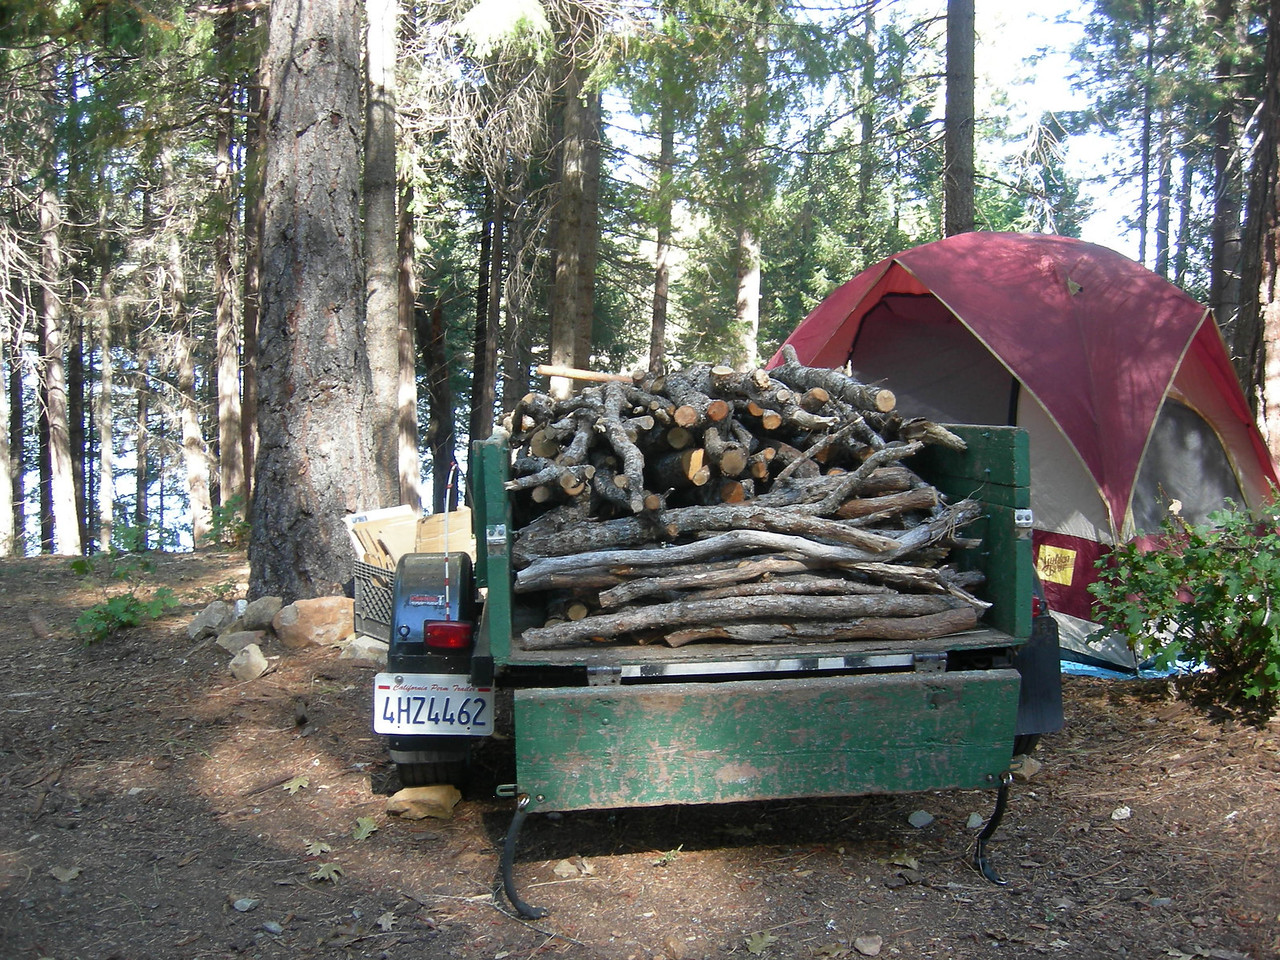 The ample supply of firewood was provided by Tuco Harris.